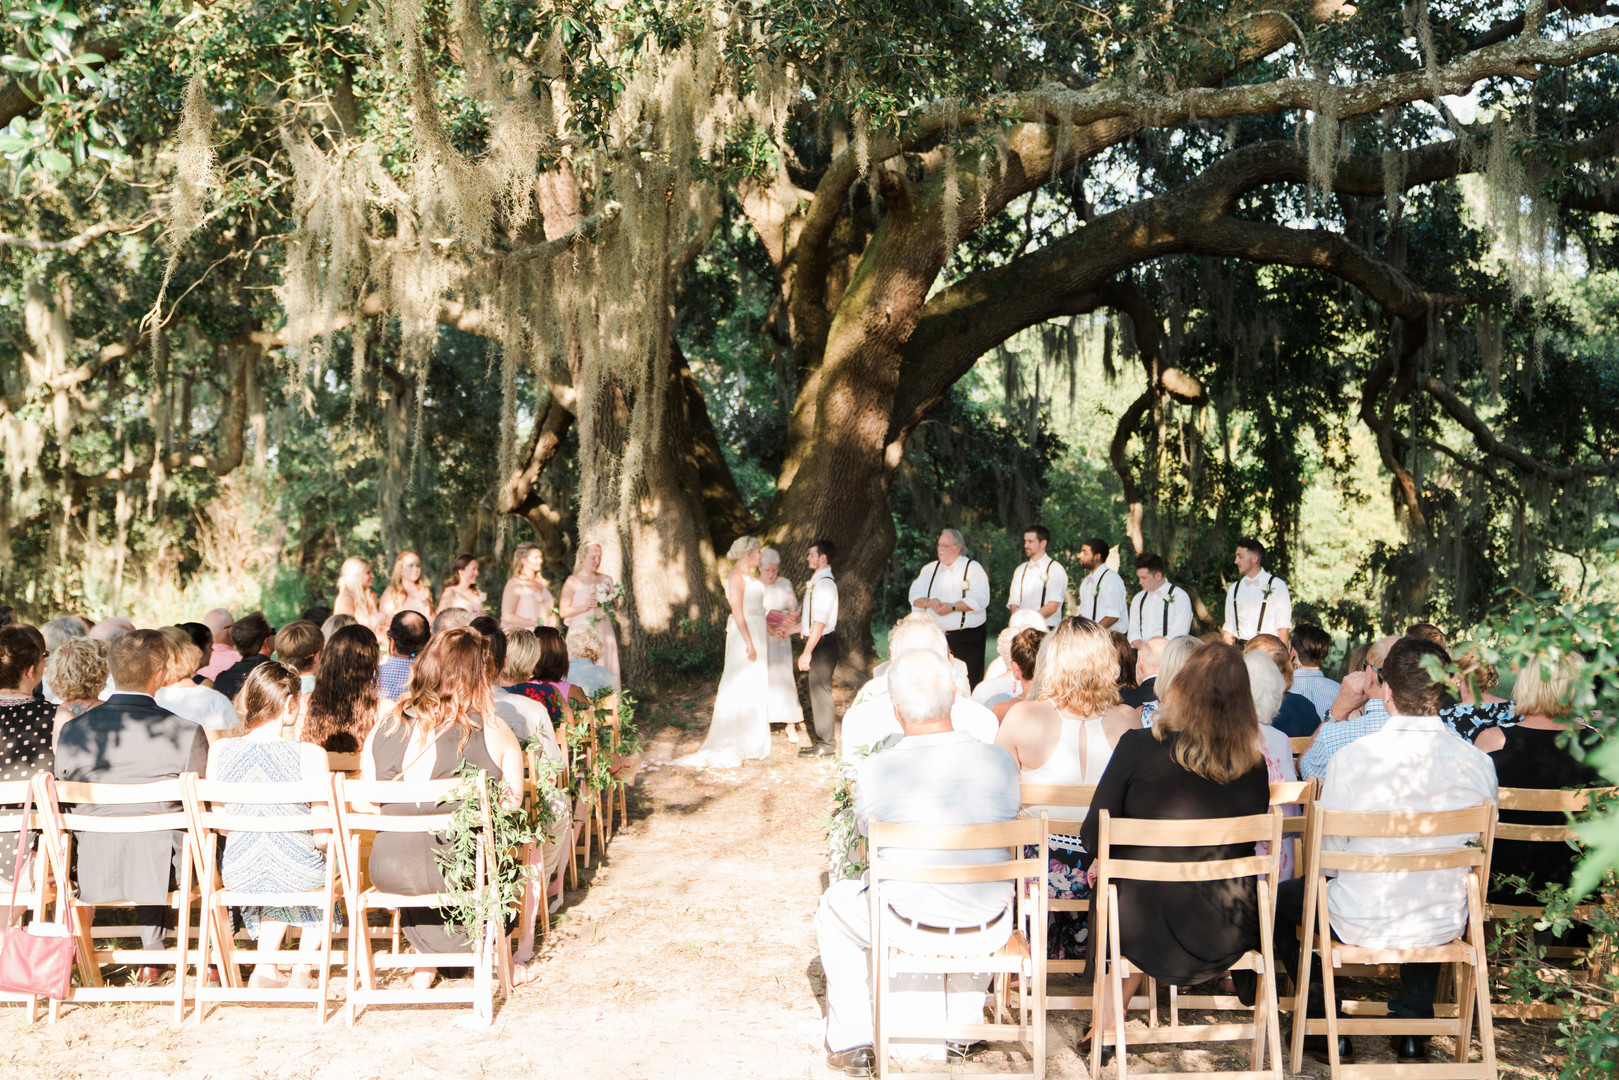 charleston-tea-plantation-wedding-19.jpg